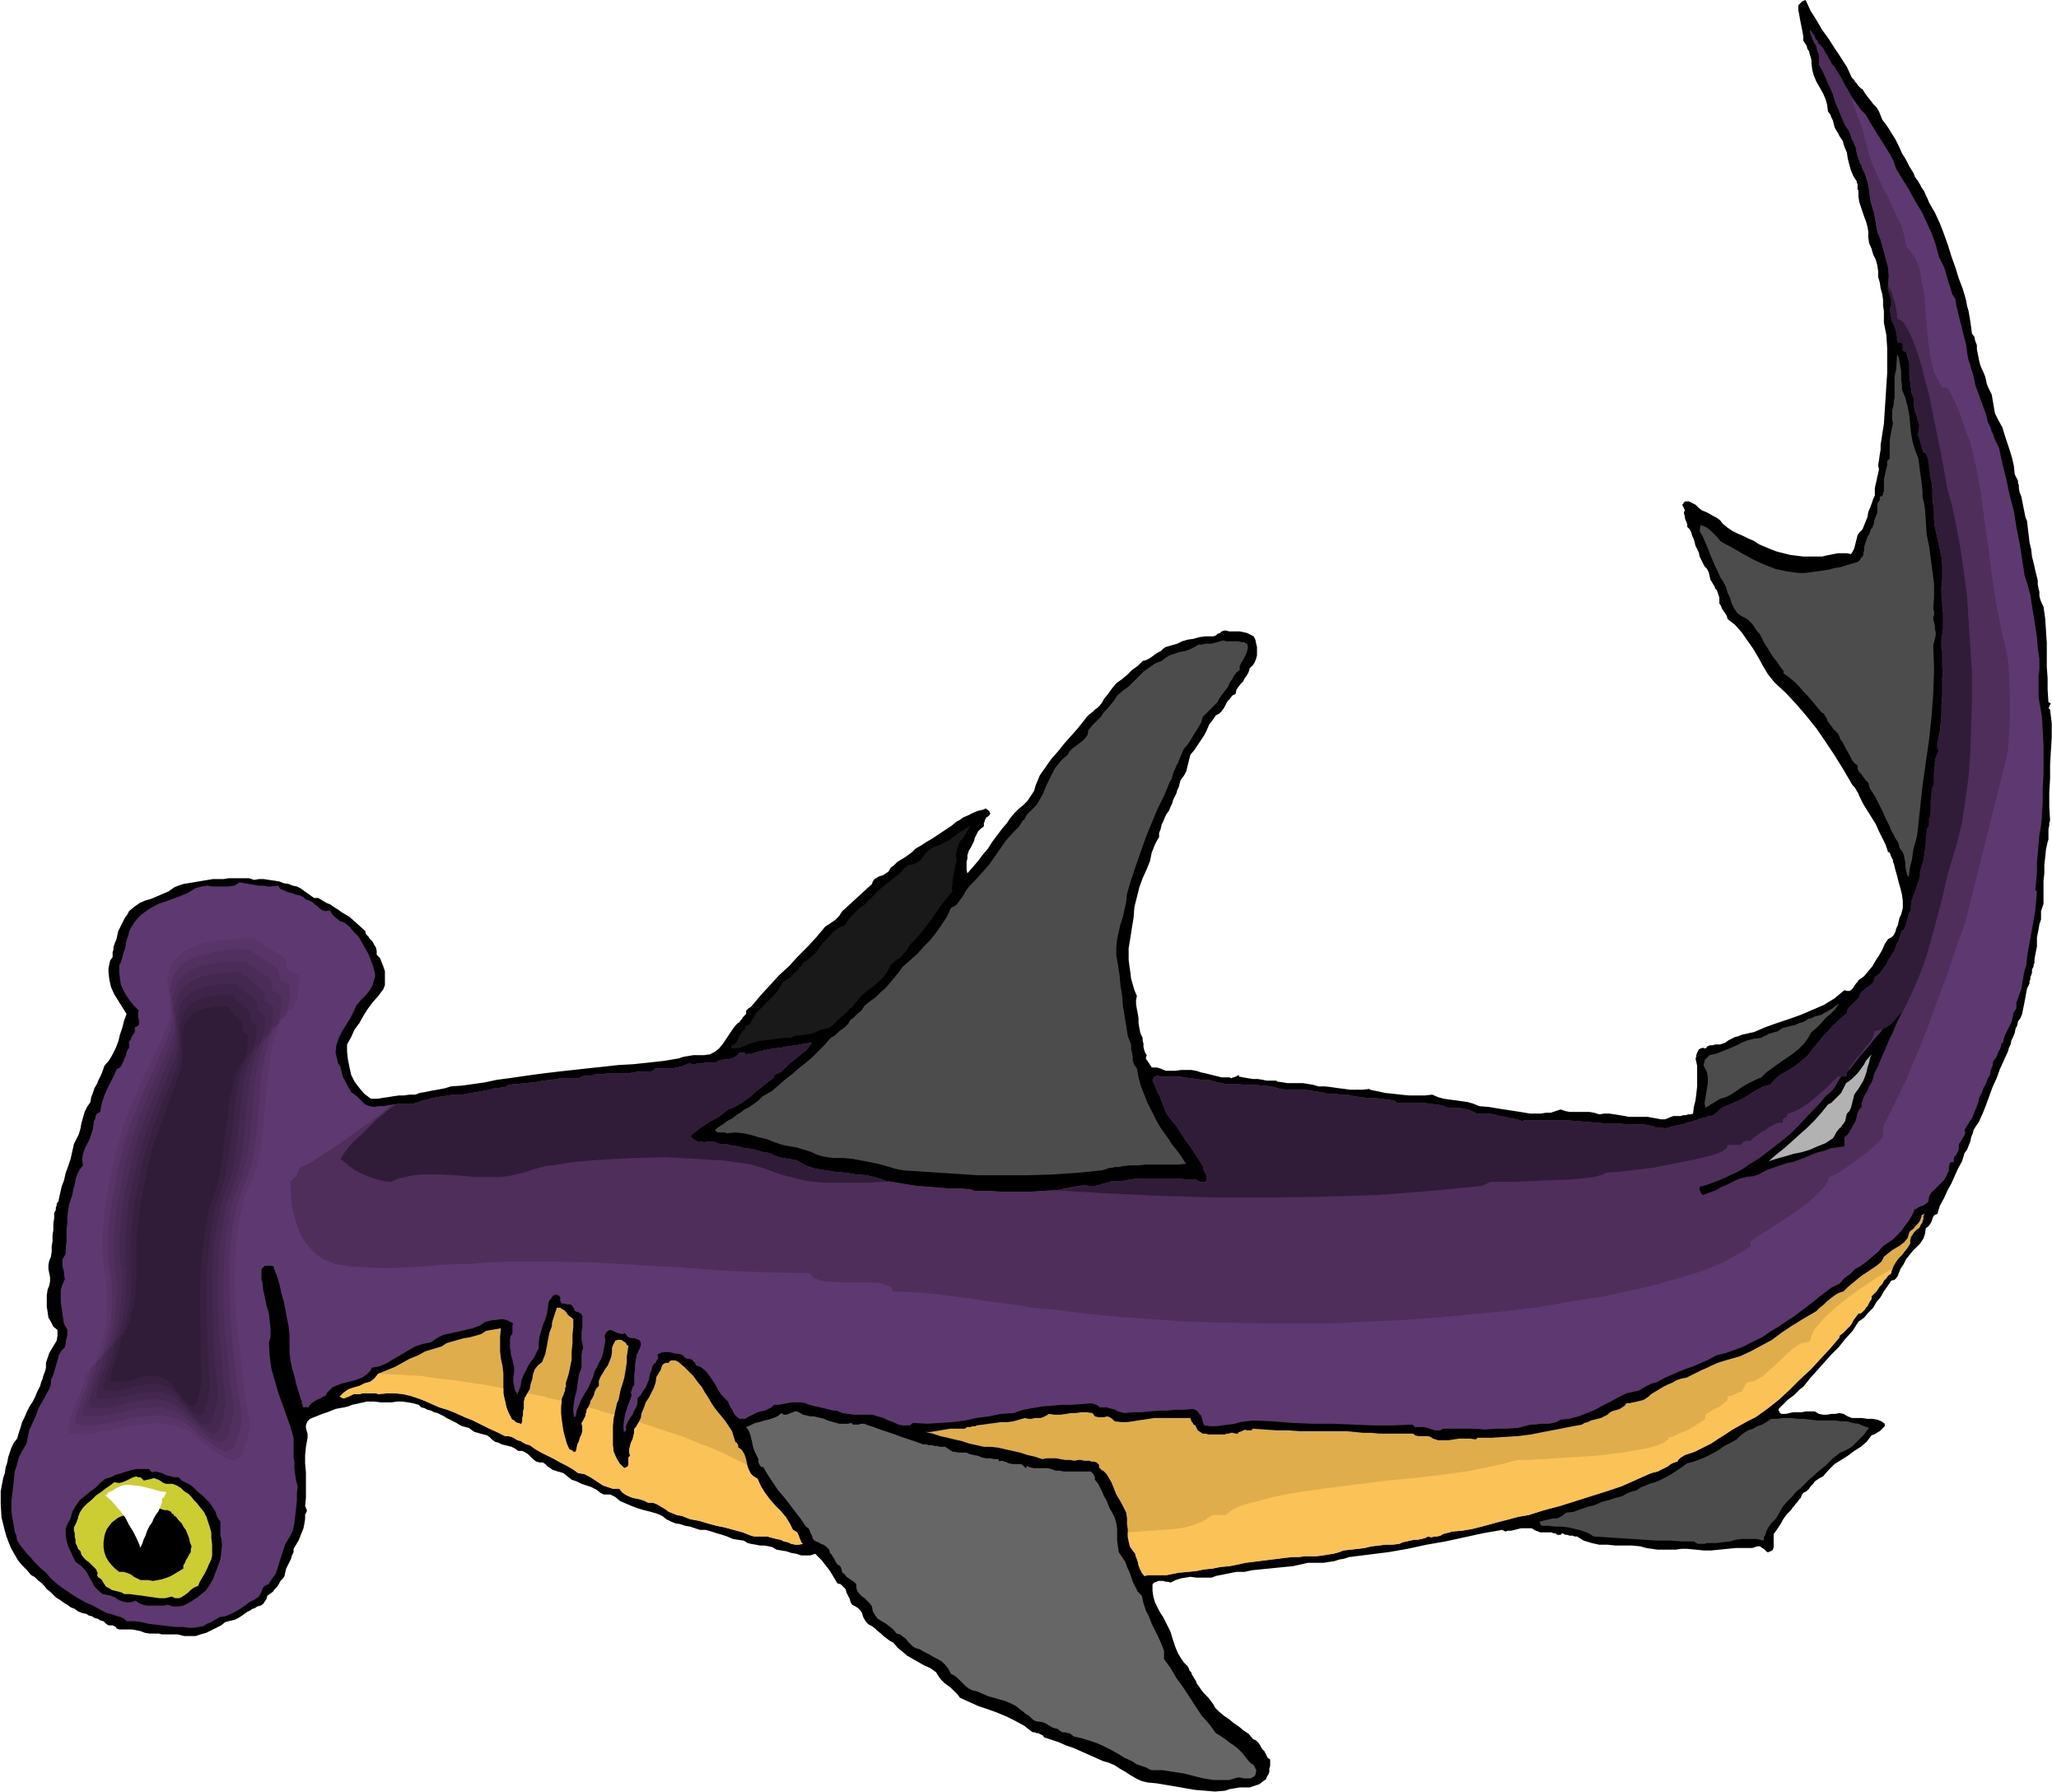 Hammerhead Shark clipart #2, Download drawings